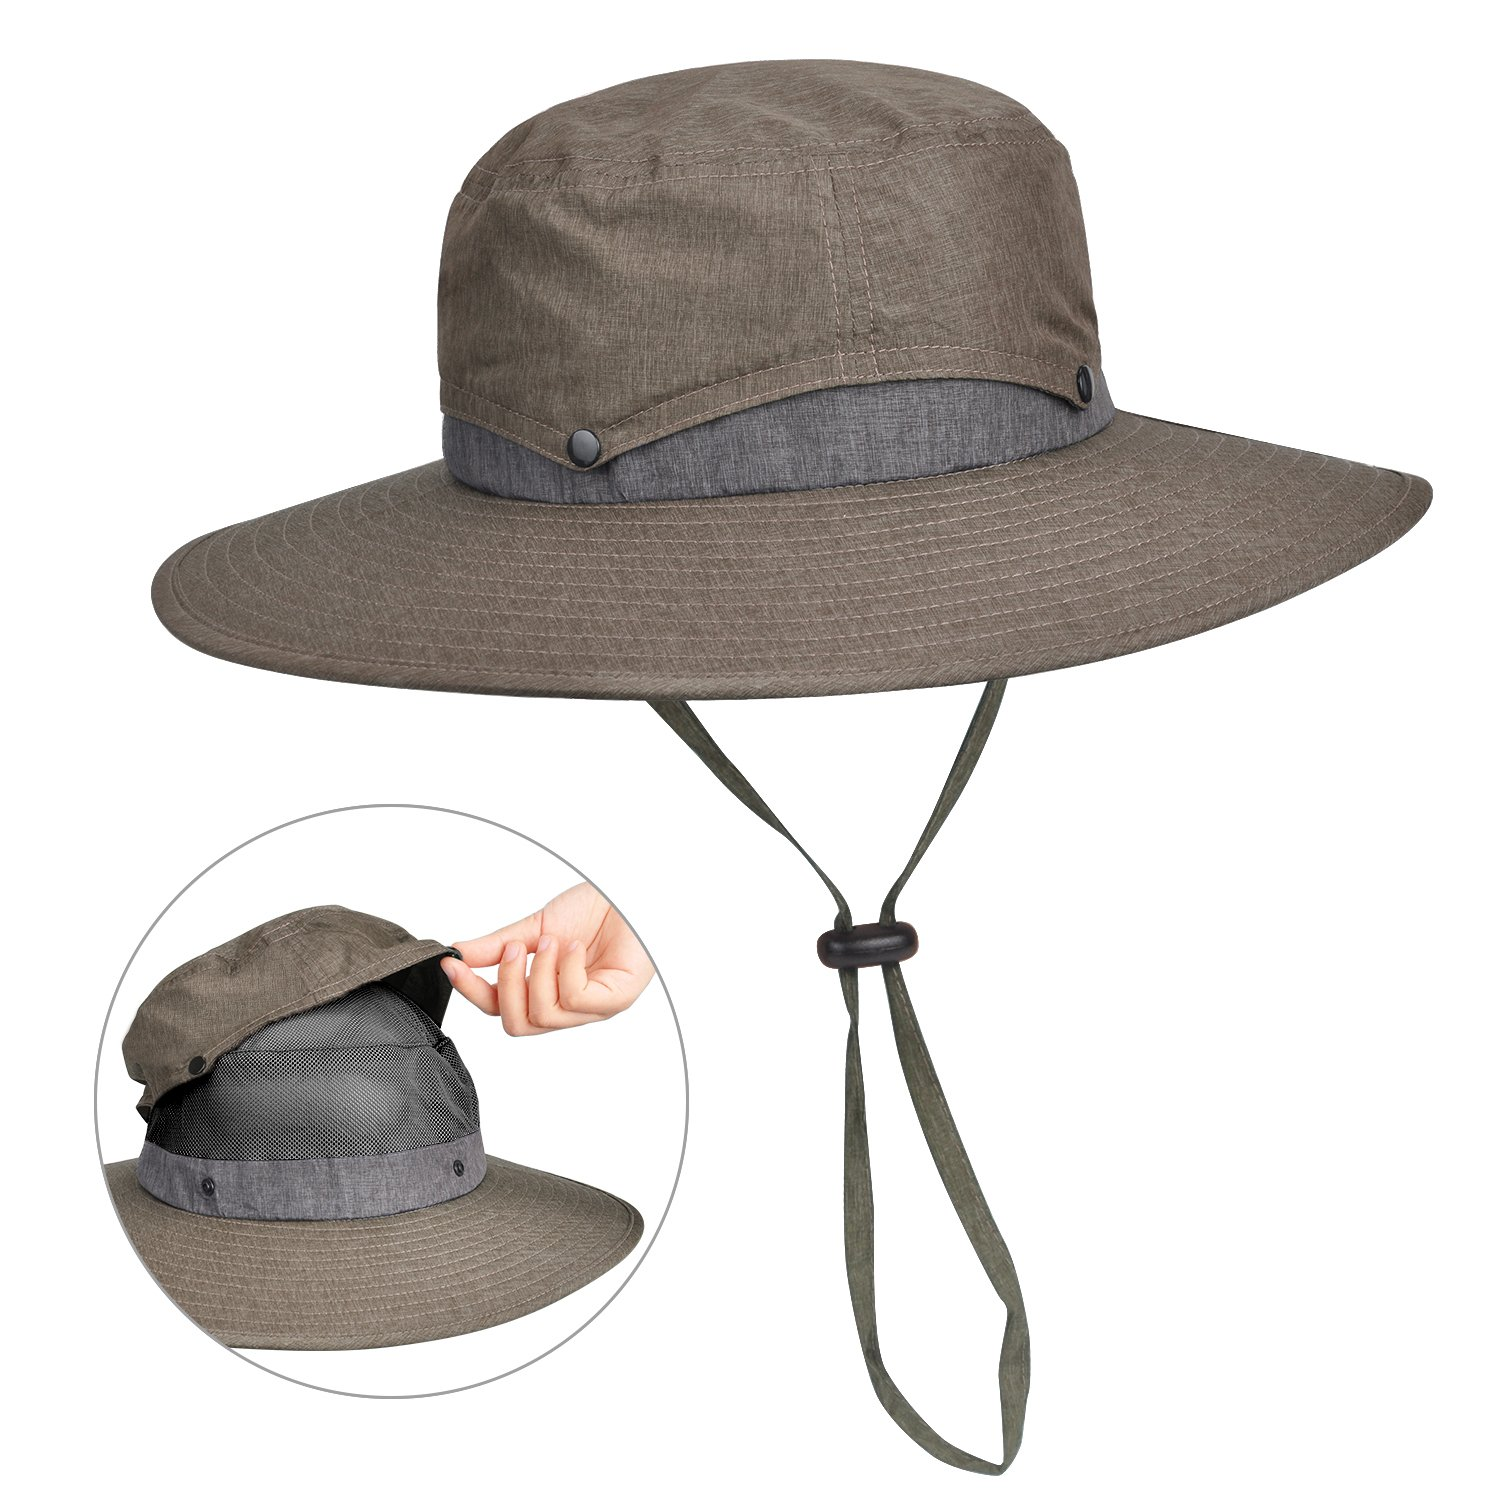 Solaris Outdoor Sun Protection Hat Men Wide Brim Hunting Fishing Camping Safari Cap with Collapsible Crown Grey